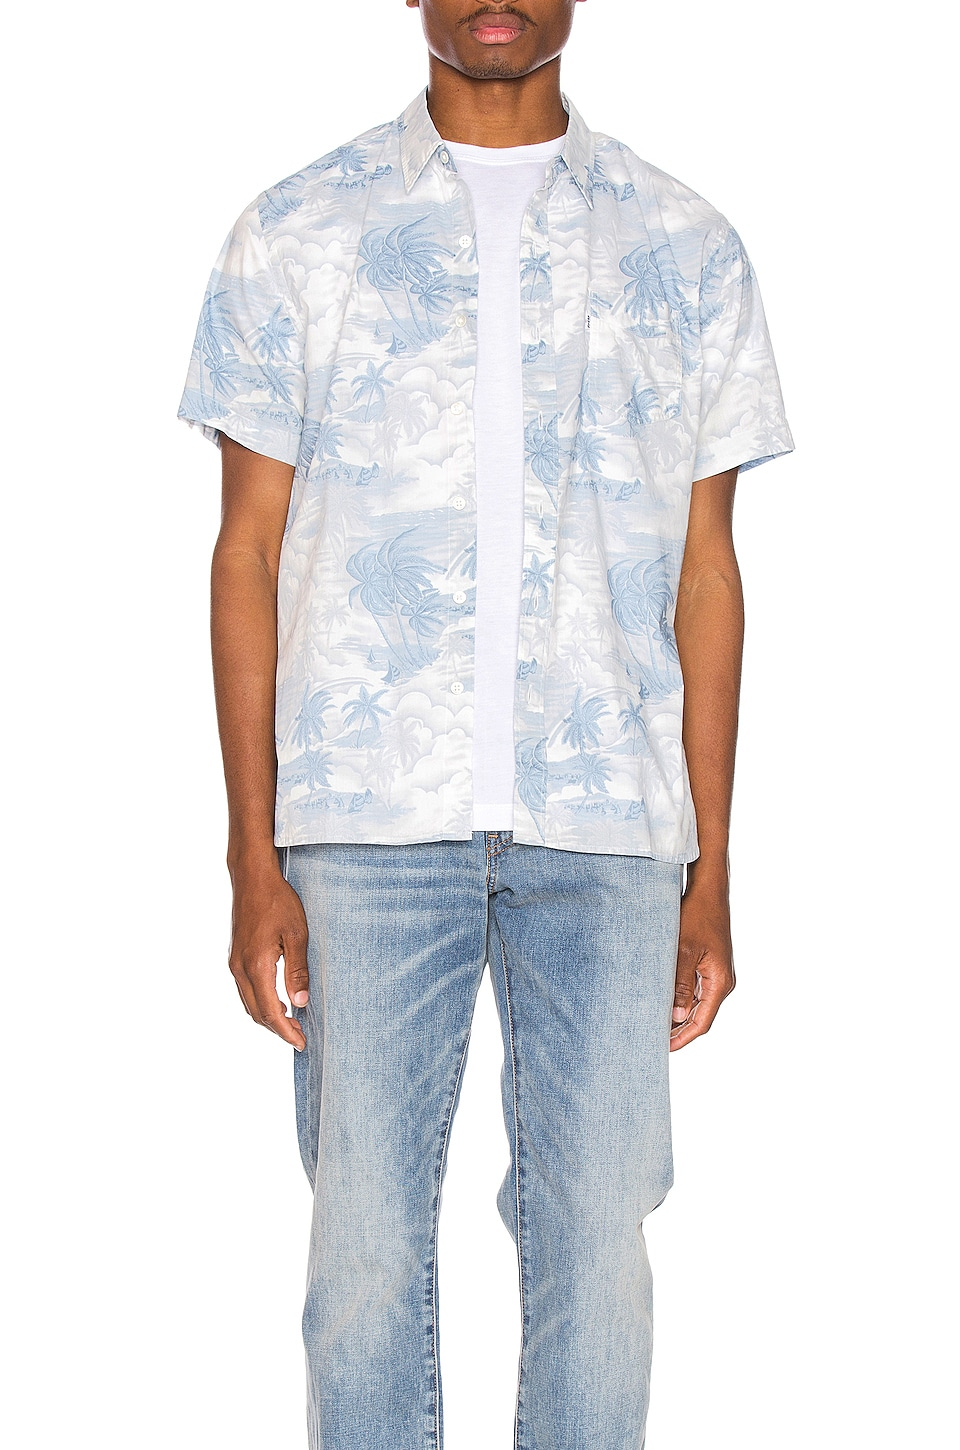 a0f9fd429 Levi's Premium Short Sleeve Sunset Pkt Shirt In Blue. In Acid Hawaiian  Dusty Blue